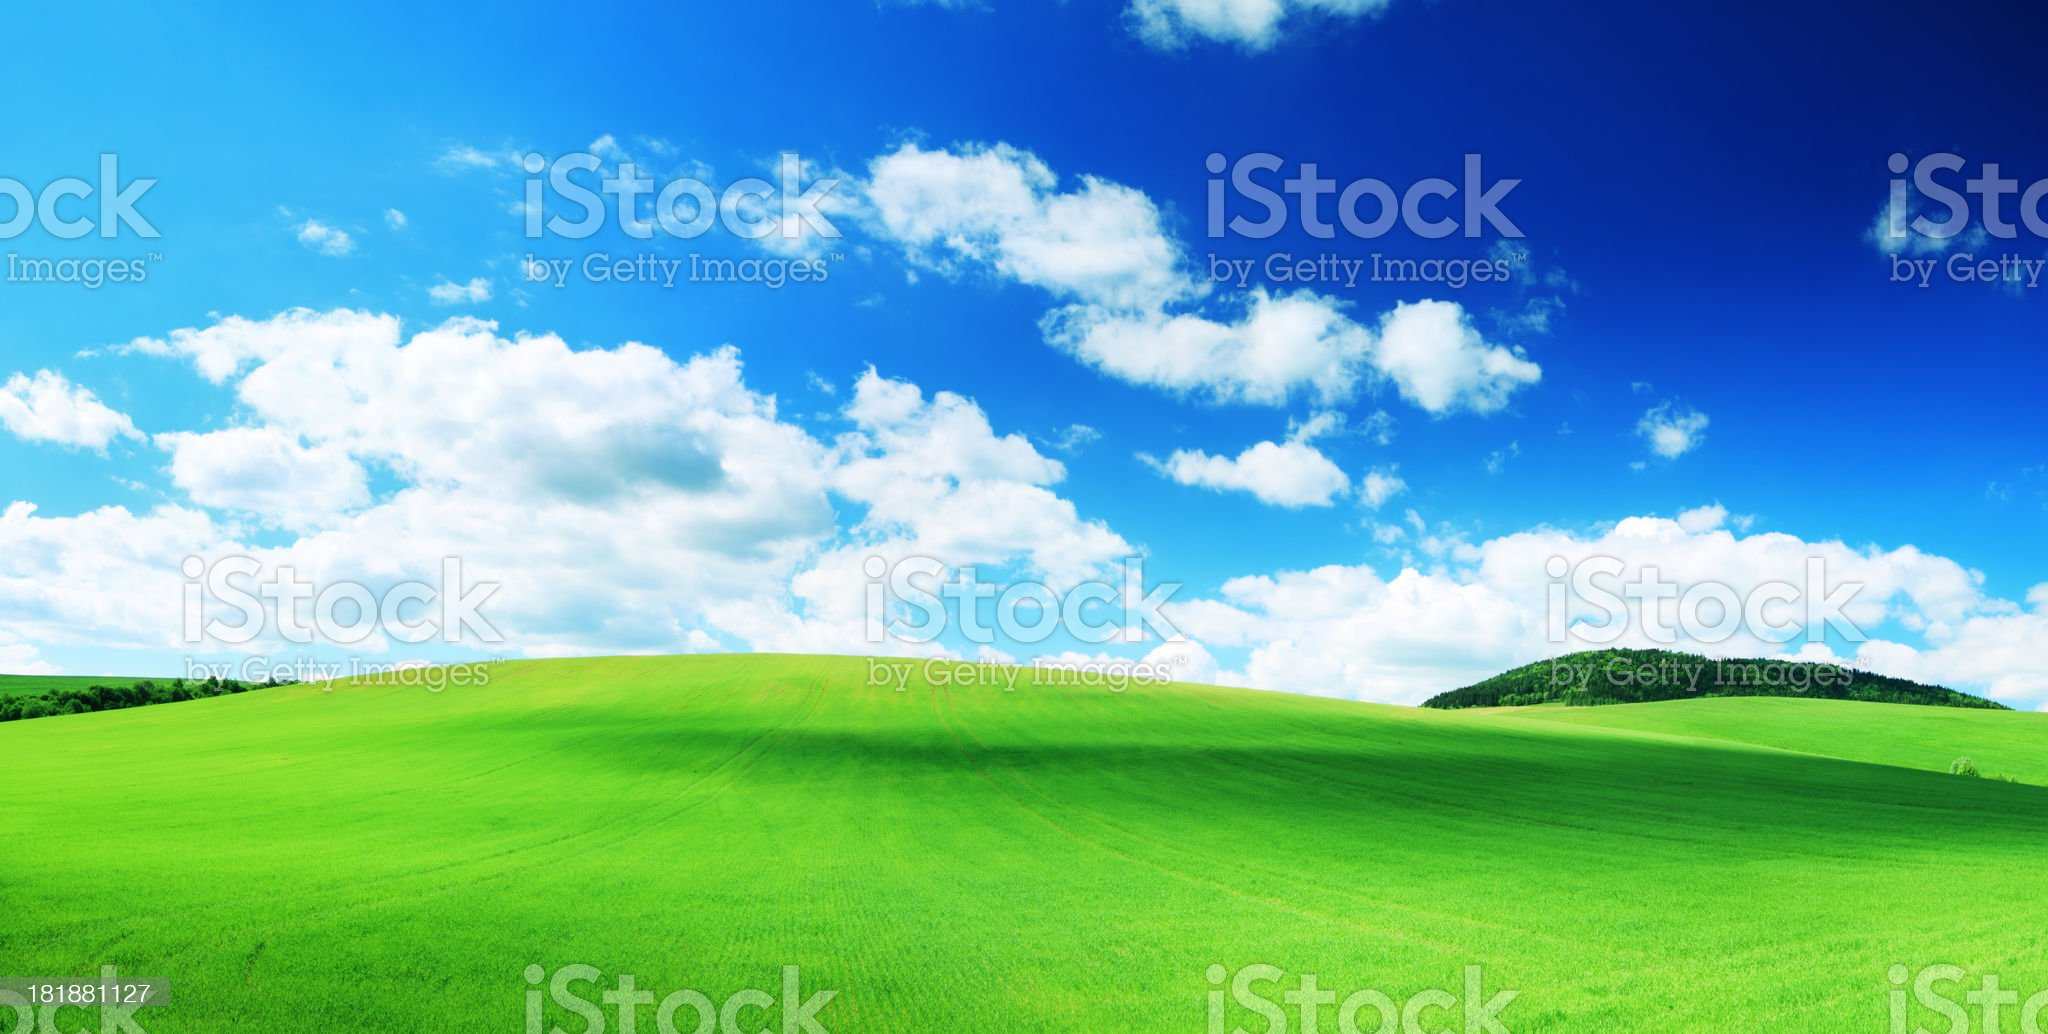 Panoramic Landscape - Shadows Dancing on Green Field royalty-free stock photo